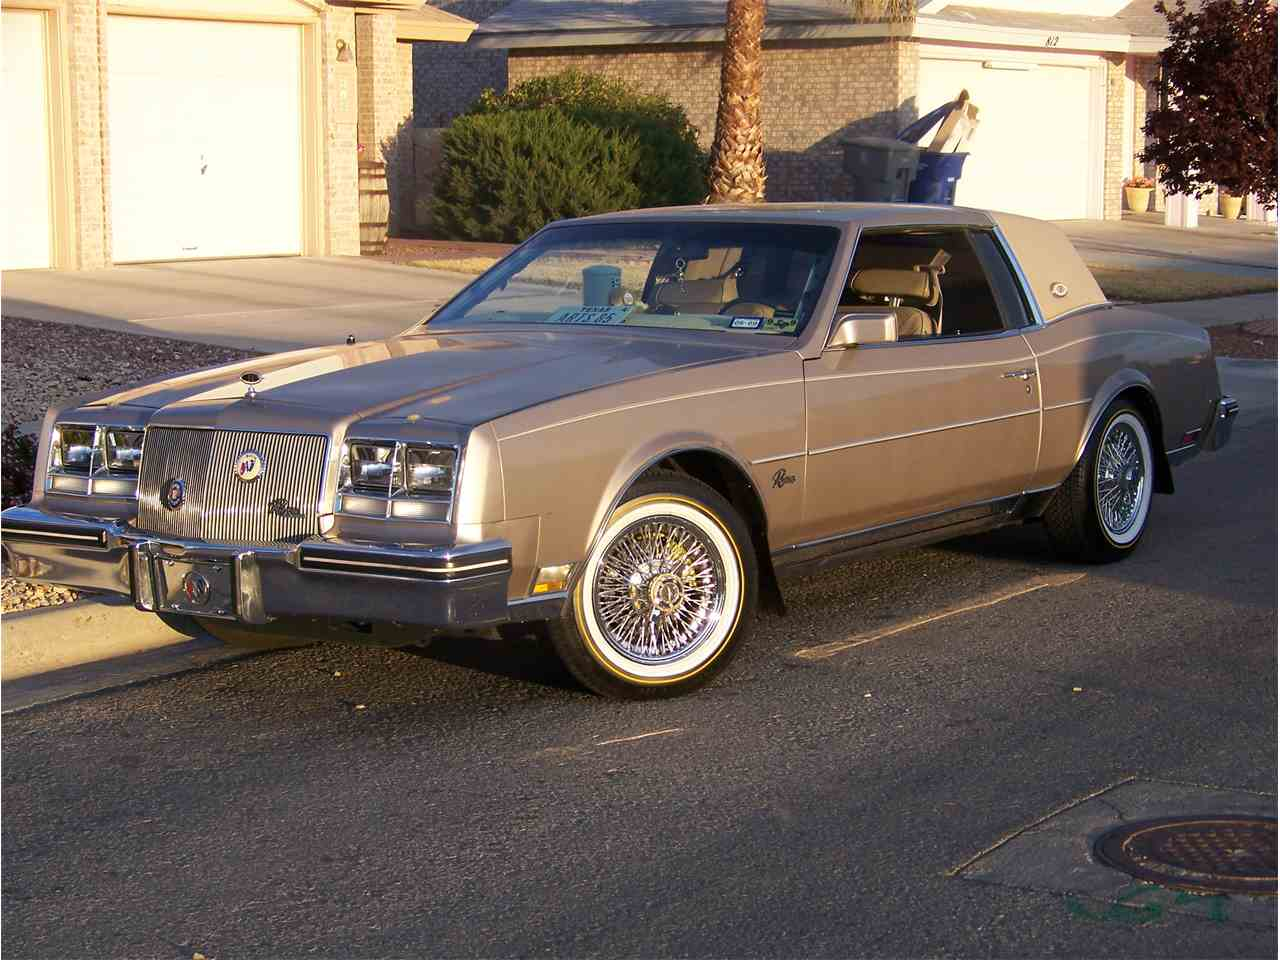 Large Picture of '85 Riviera located in Texas - $13,000.00 Offered by a Private Seller - BVEG